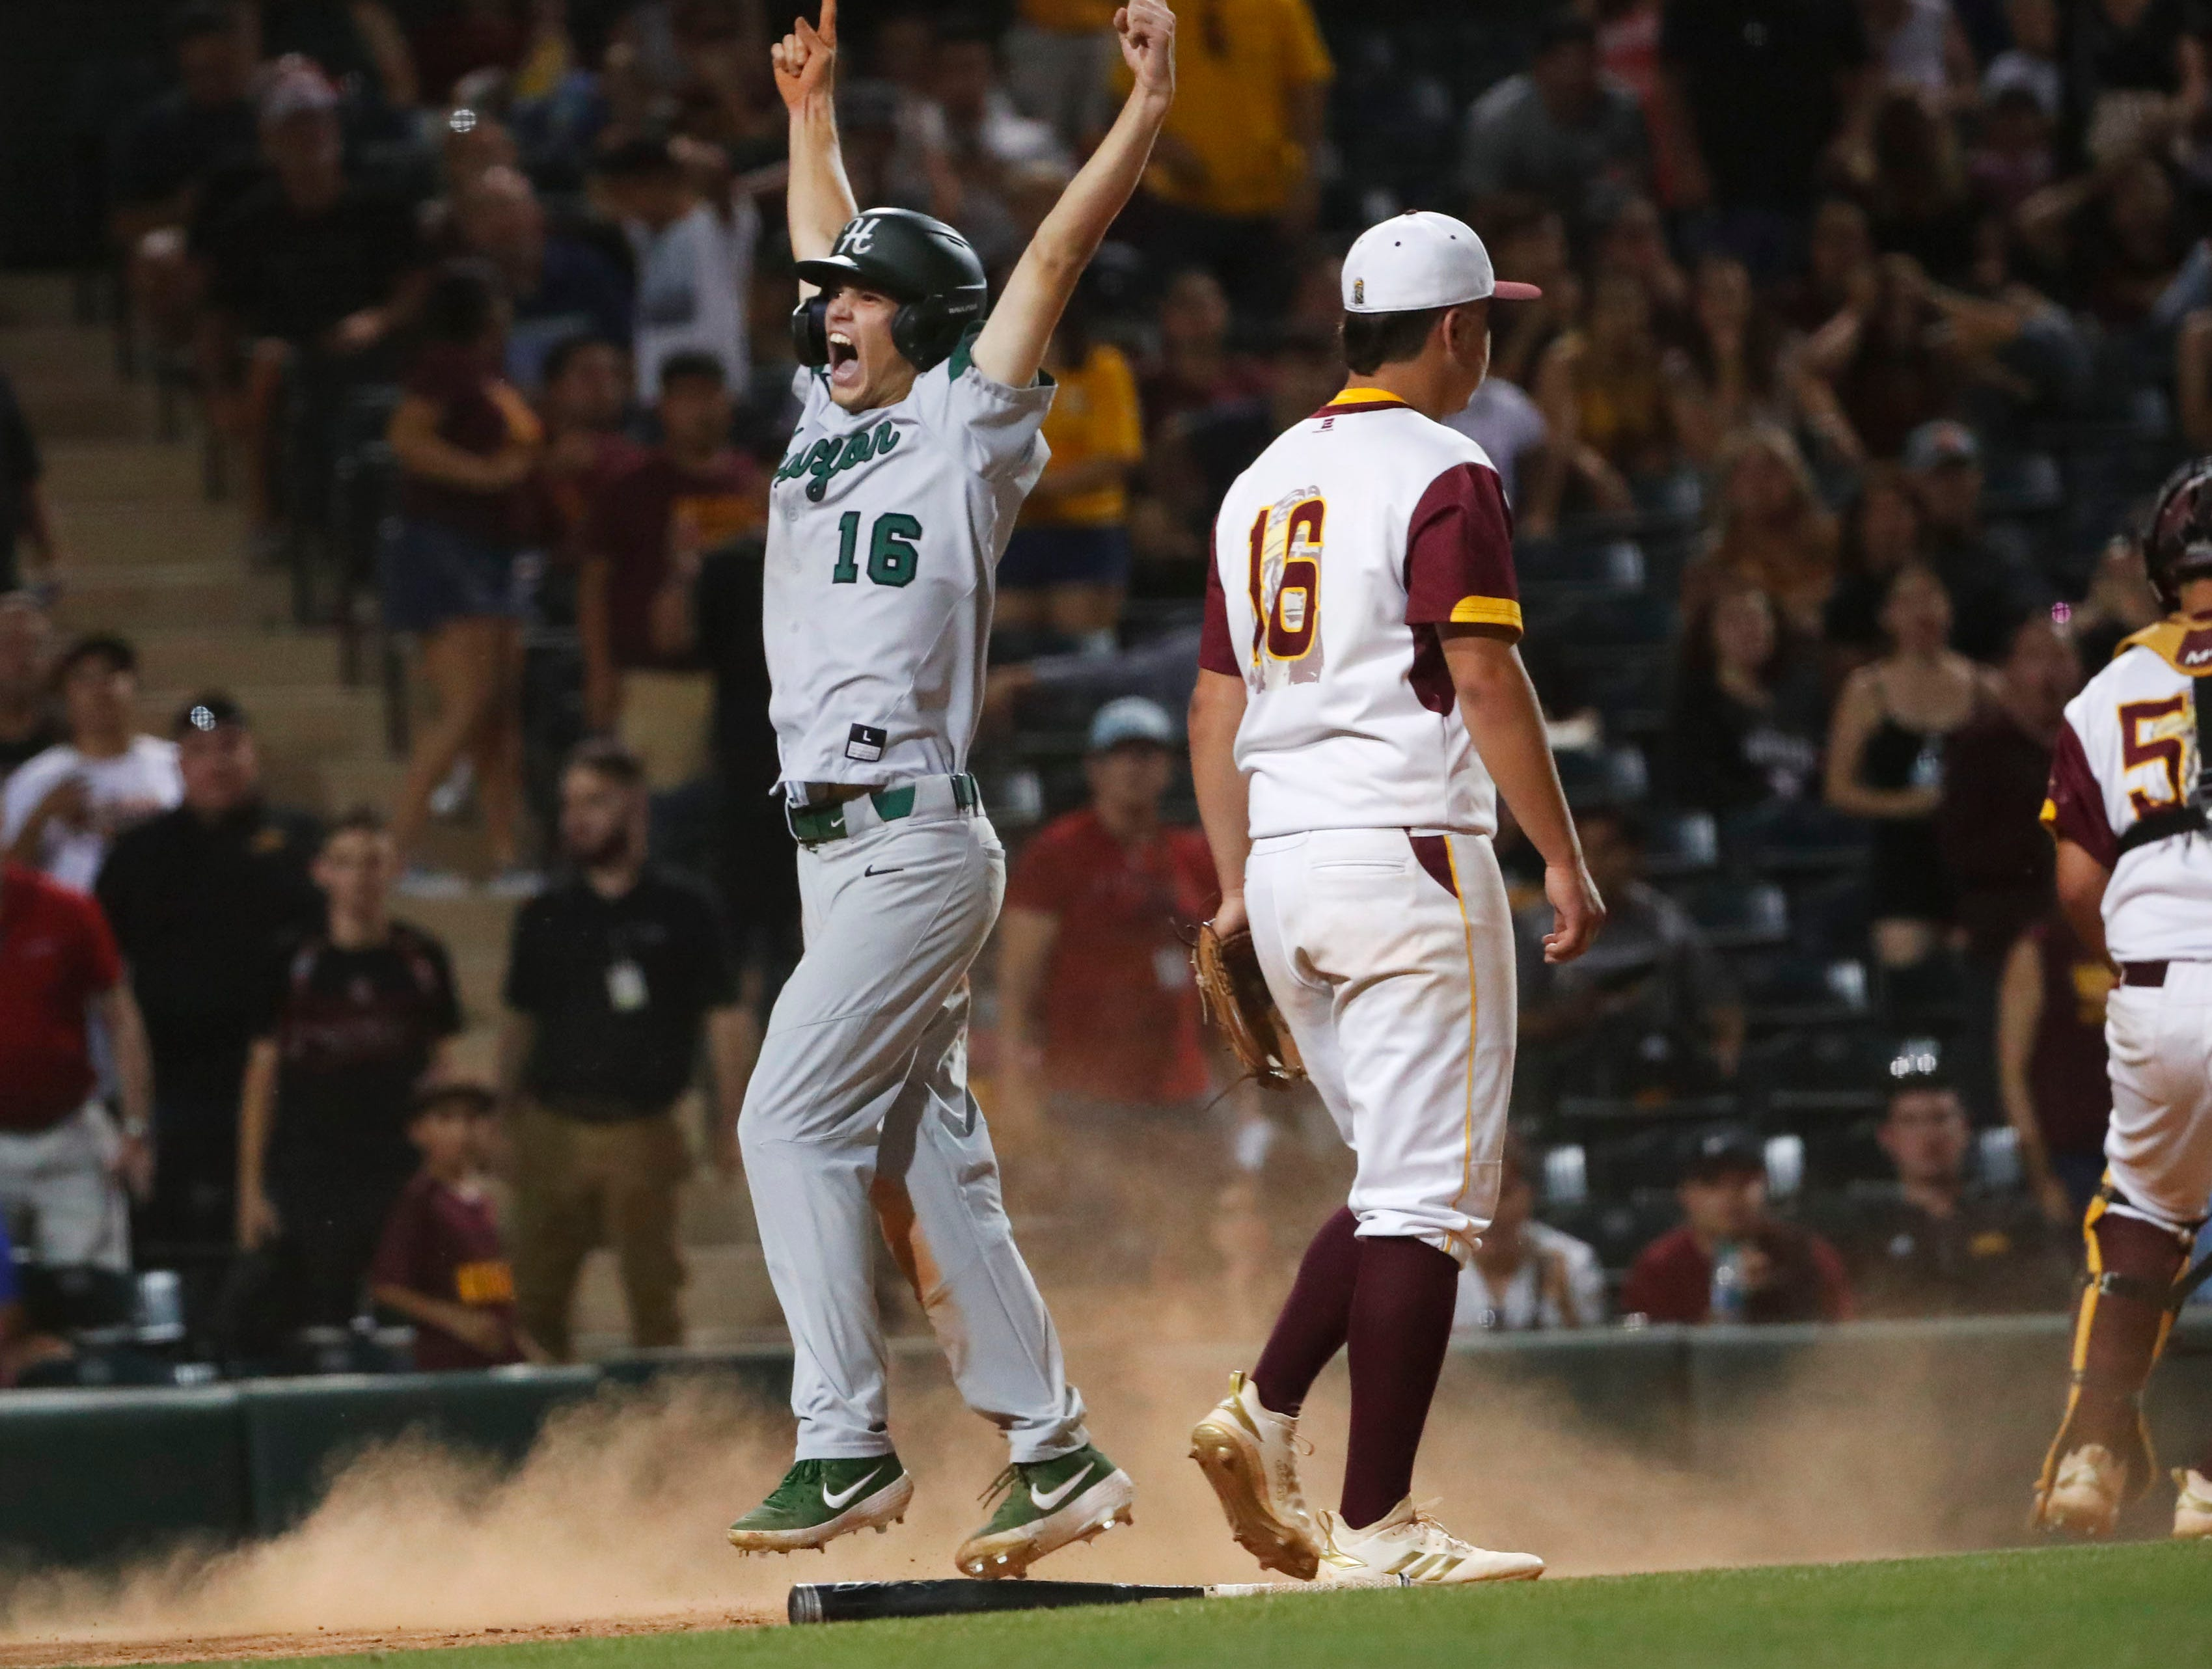 Horizon's Brady Miltenberger (16) scores against Nogales in the 15th inning during the 5A State Baseball Championship in Tempe, Ariz. May 14, 2019.